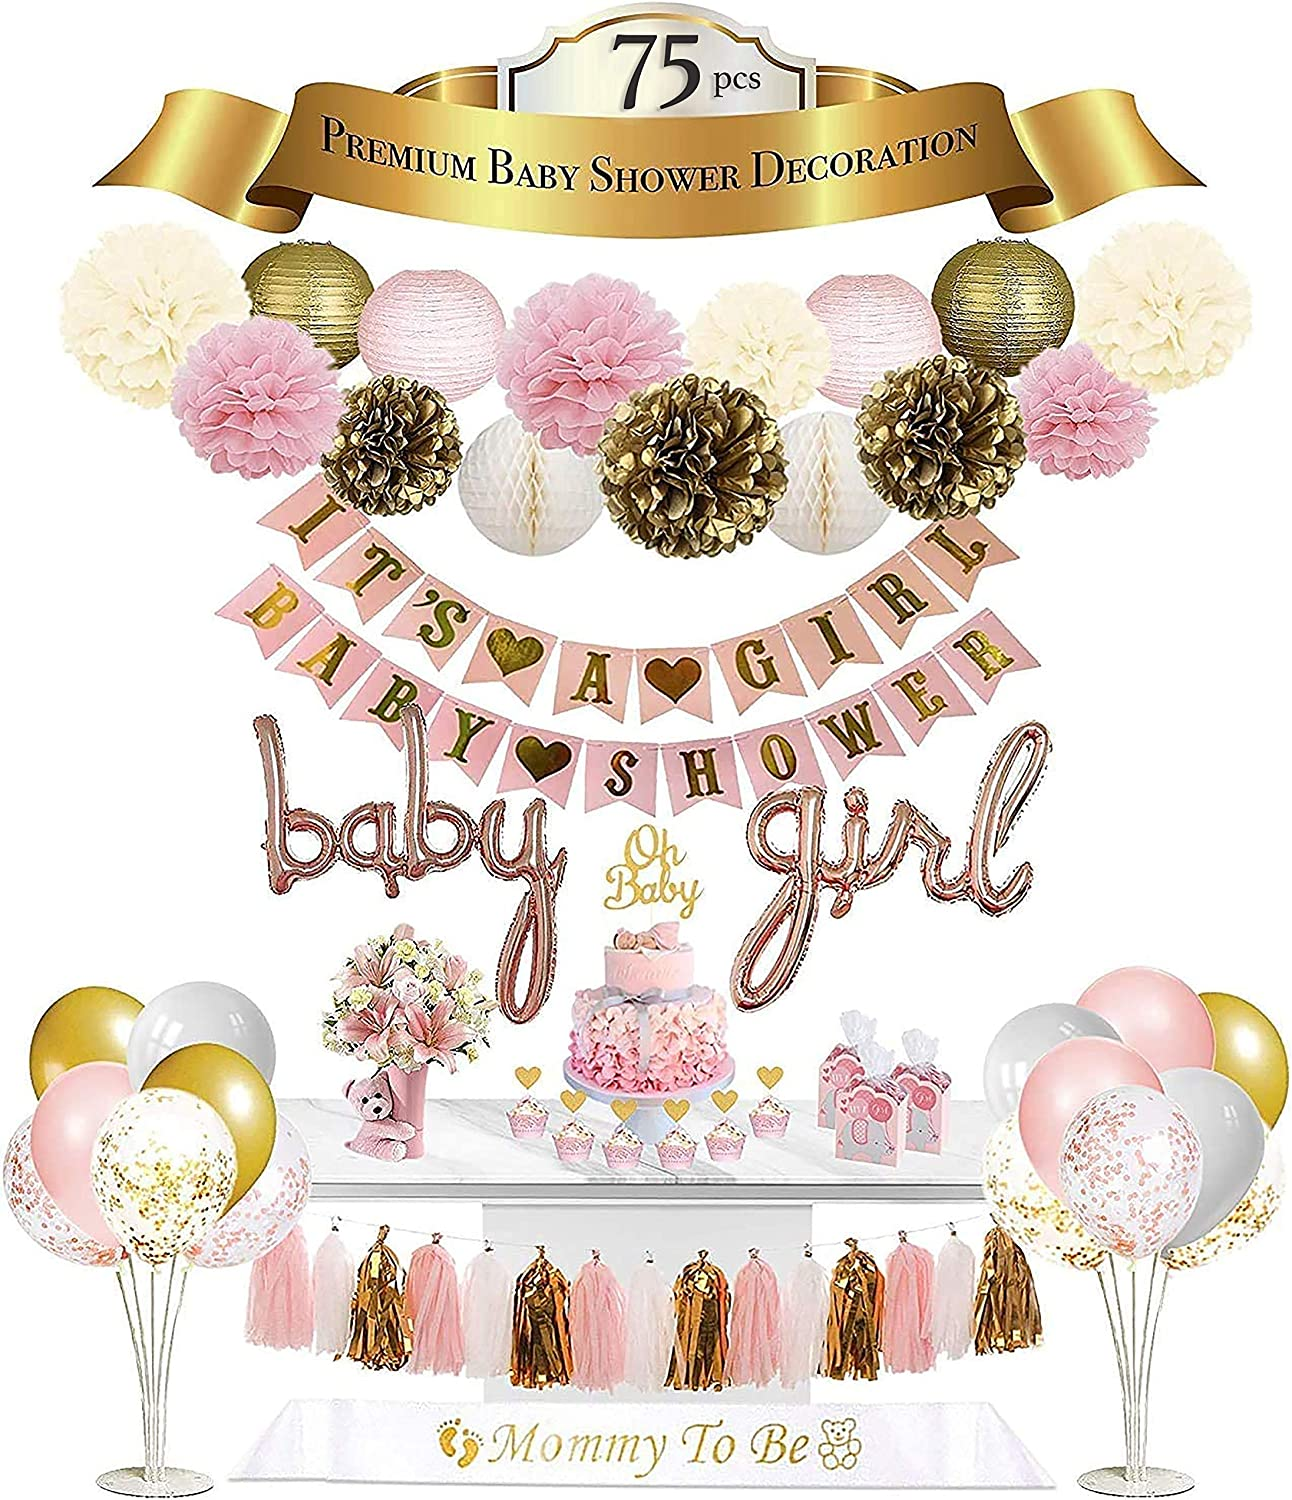 Baby Shower Decorations For Girl | Premium | 75 Pcs | It's A Girl Banner | Baby Girl Foil Balloons | Flower Pom Poms, Paper Lanterns, Honeycomb Balls, Tassels (Pink, Gold, White) | Confetti & Latex Balloons | Cake Toppers | Sash | Air Pump | US PERFECT HAPPINESS